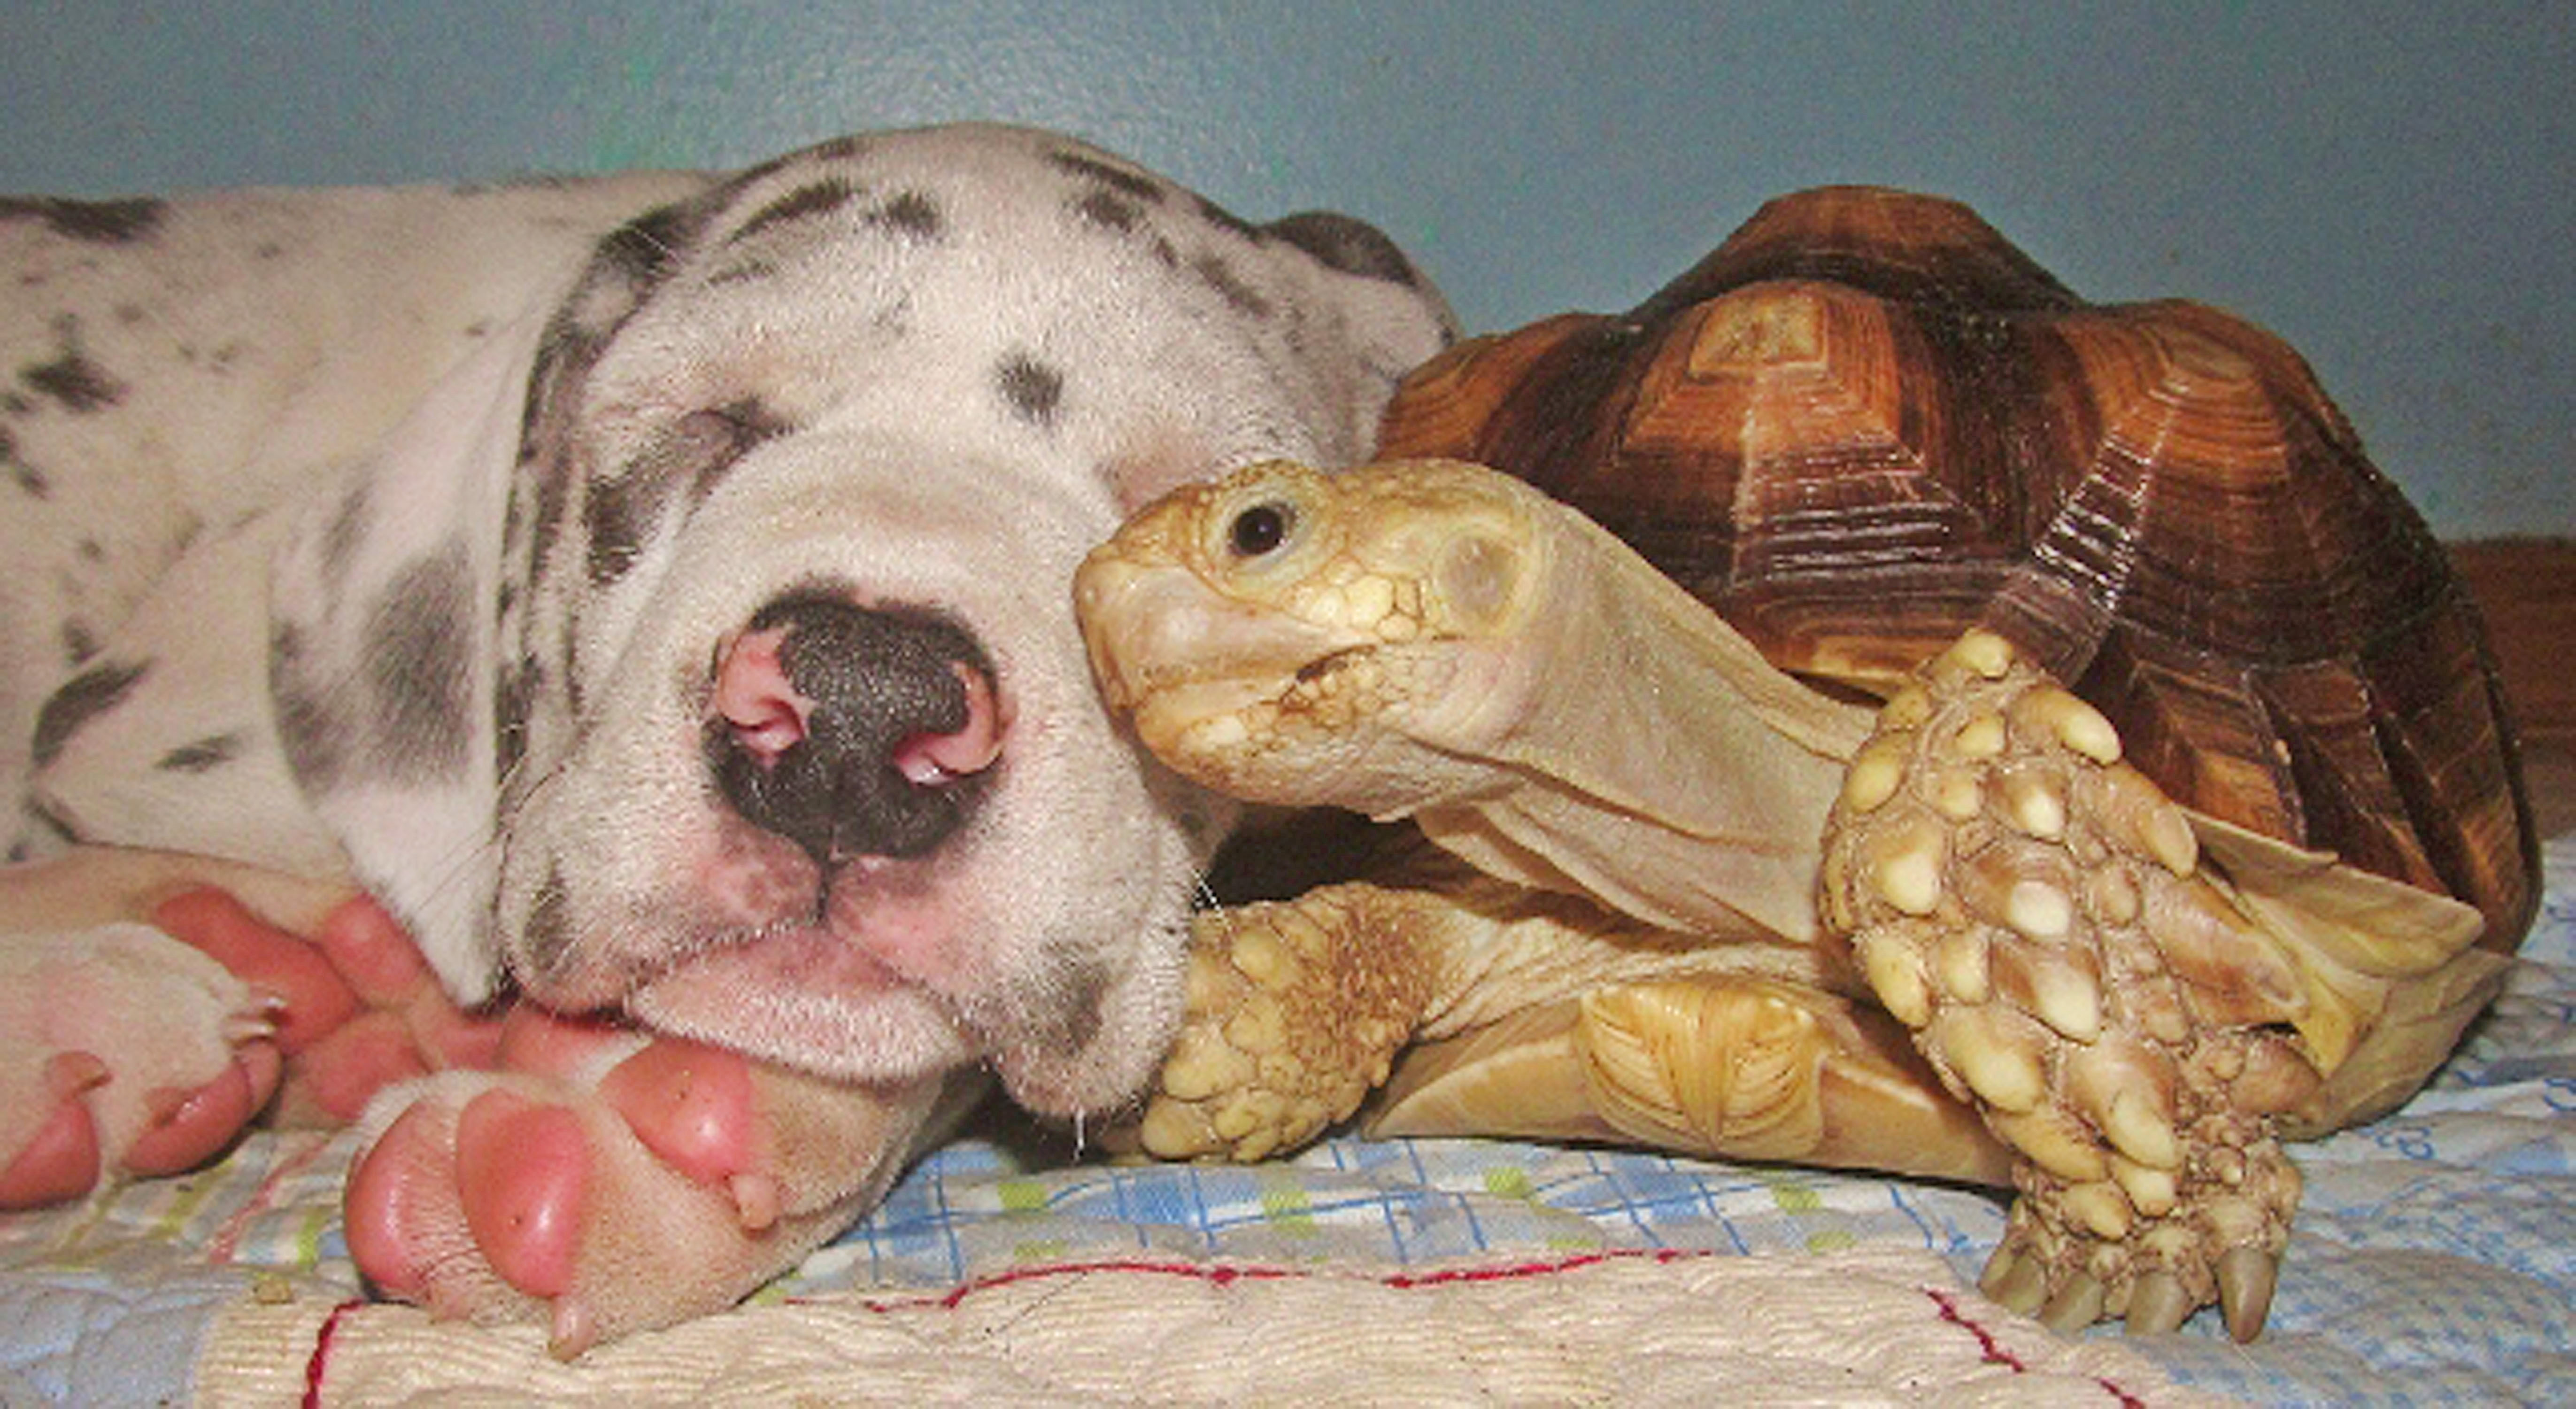 og and a turtle